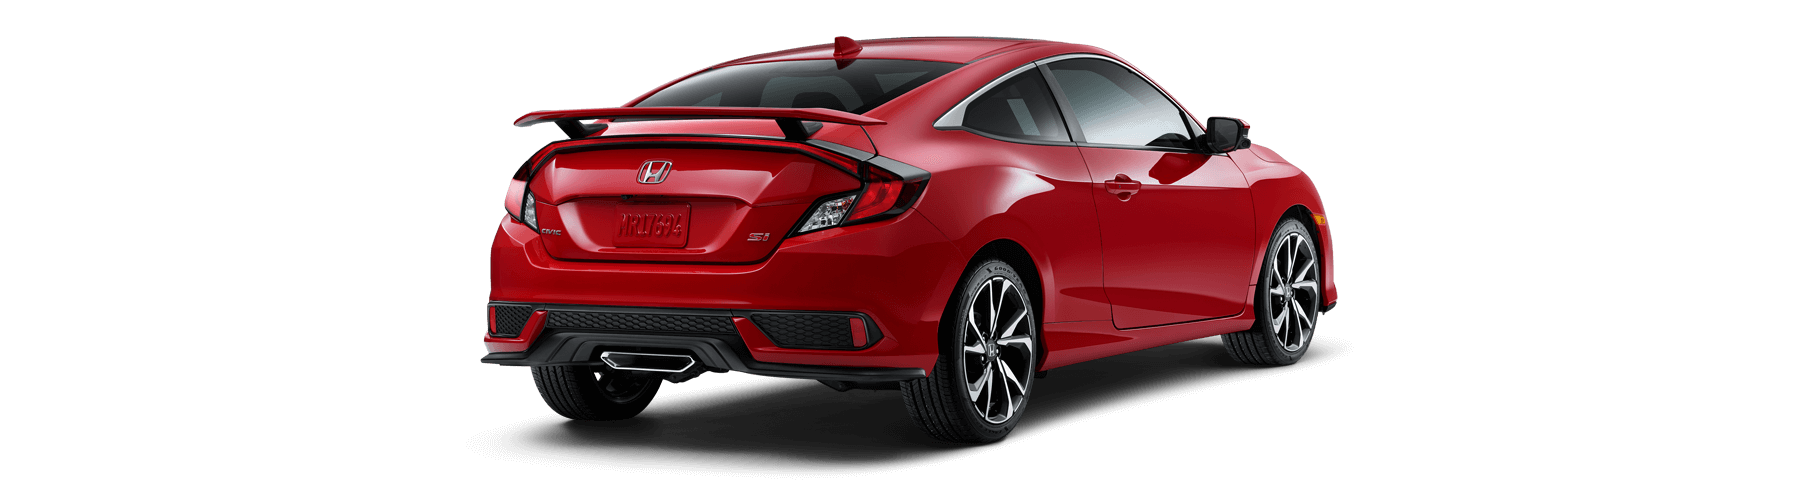 2019 Honda Civic Si Coupe Rear Angle